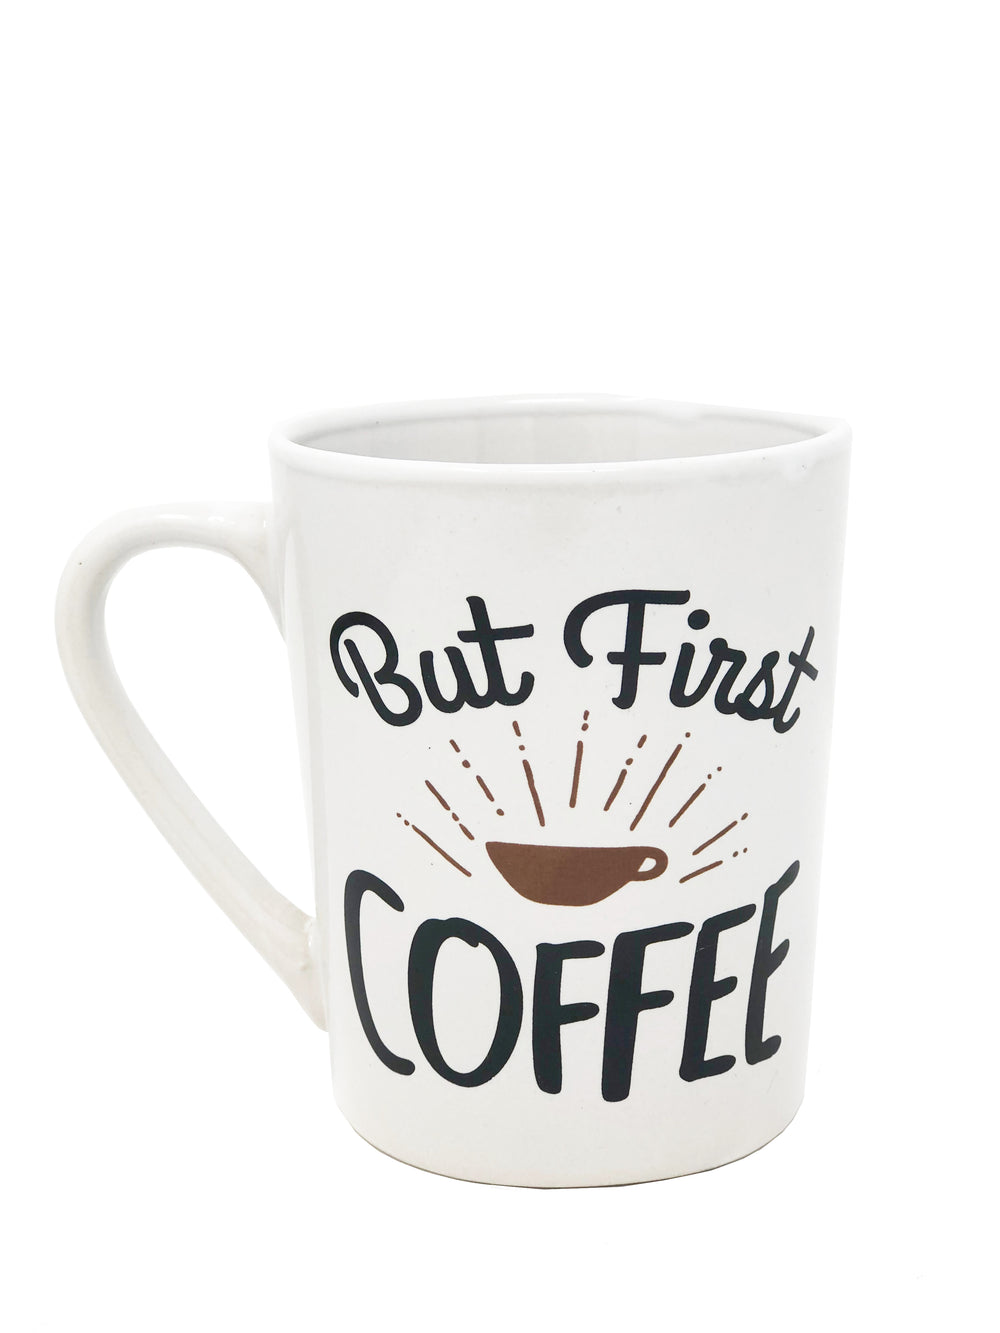 But First Coffee Design Coffee Mug For Breakfast Tea Lunch Dinner Work Home Cup